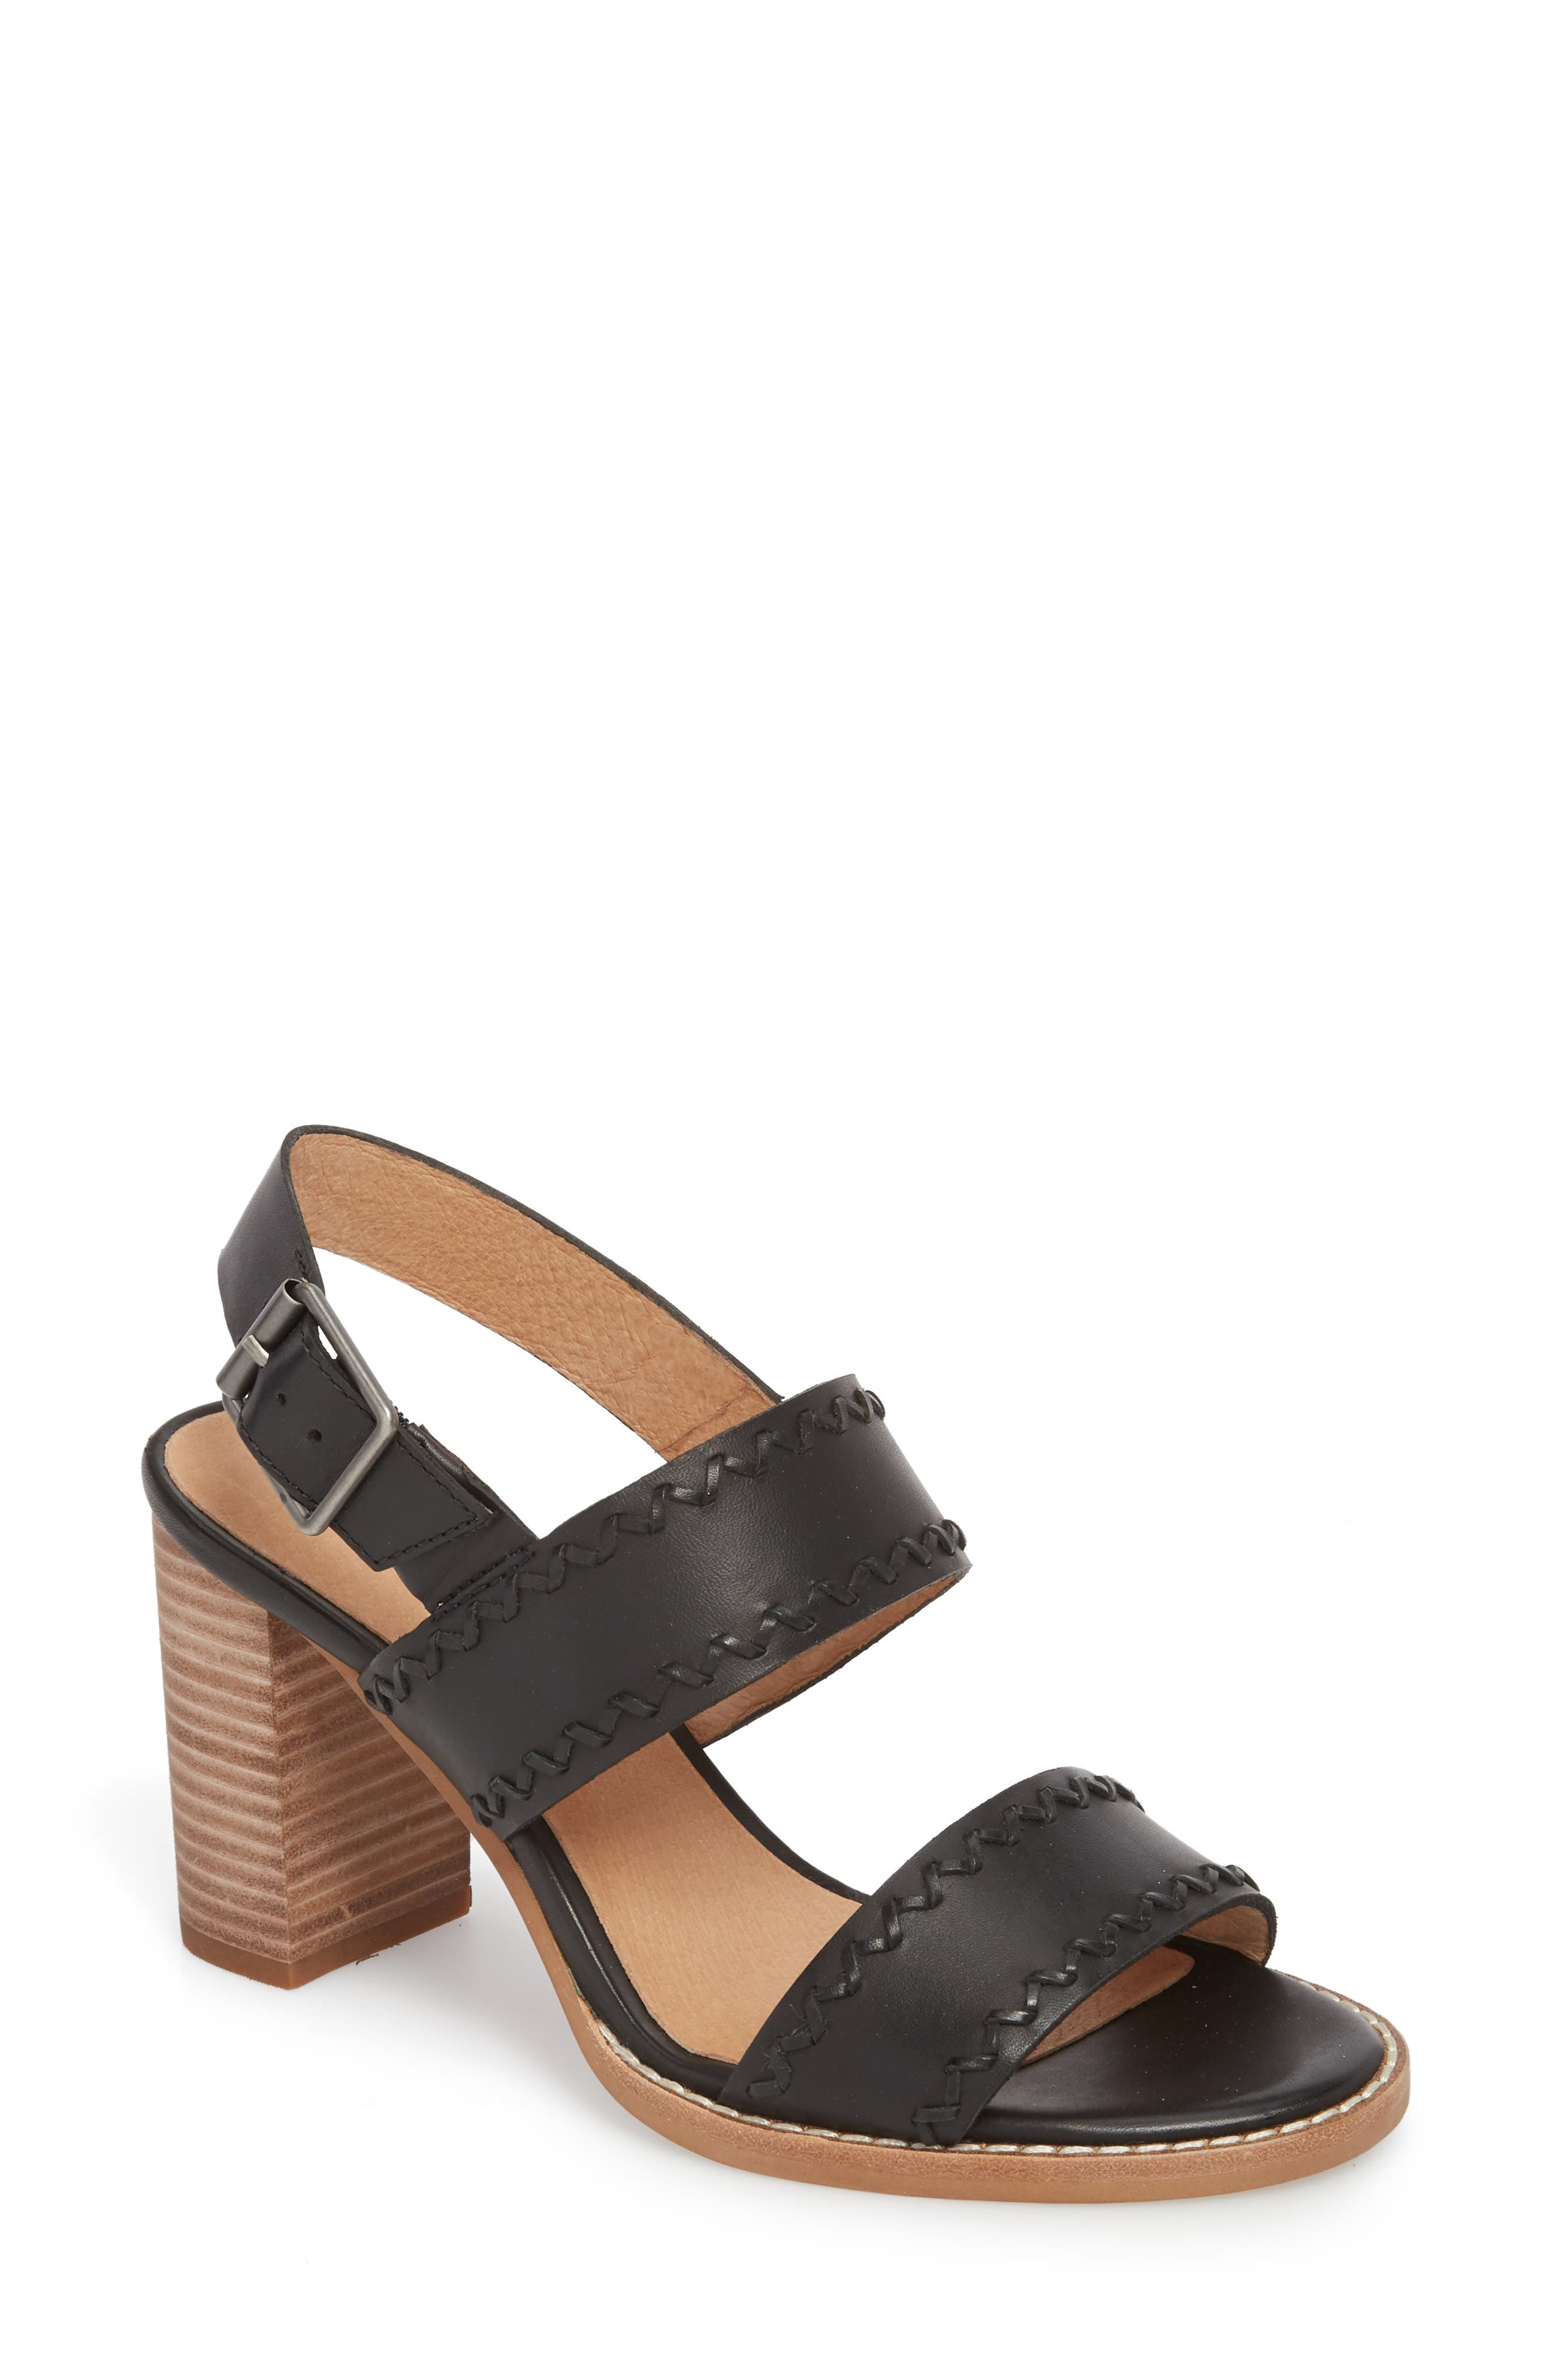 Angie Sandal,                         Main,                         color,